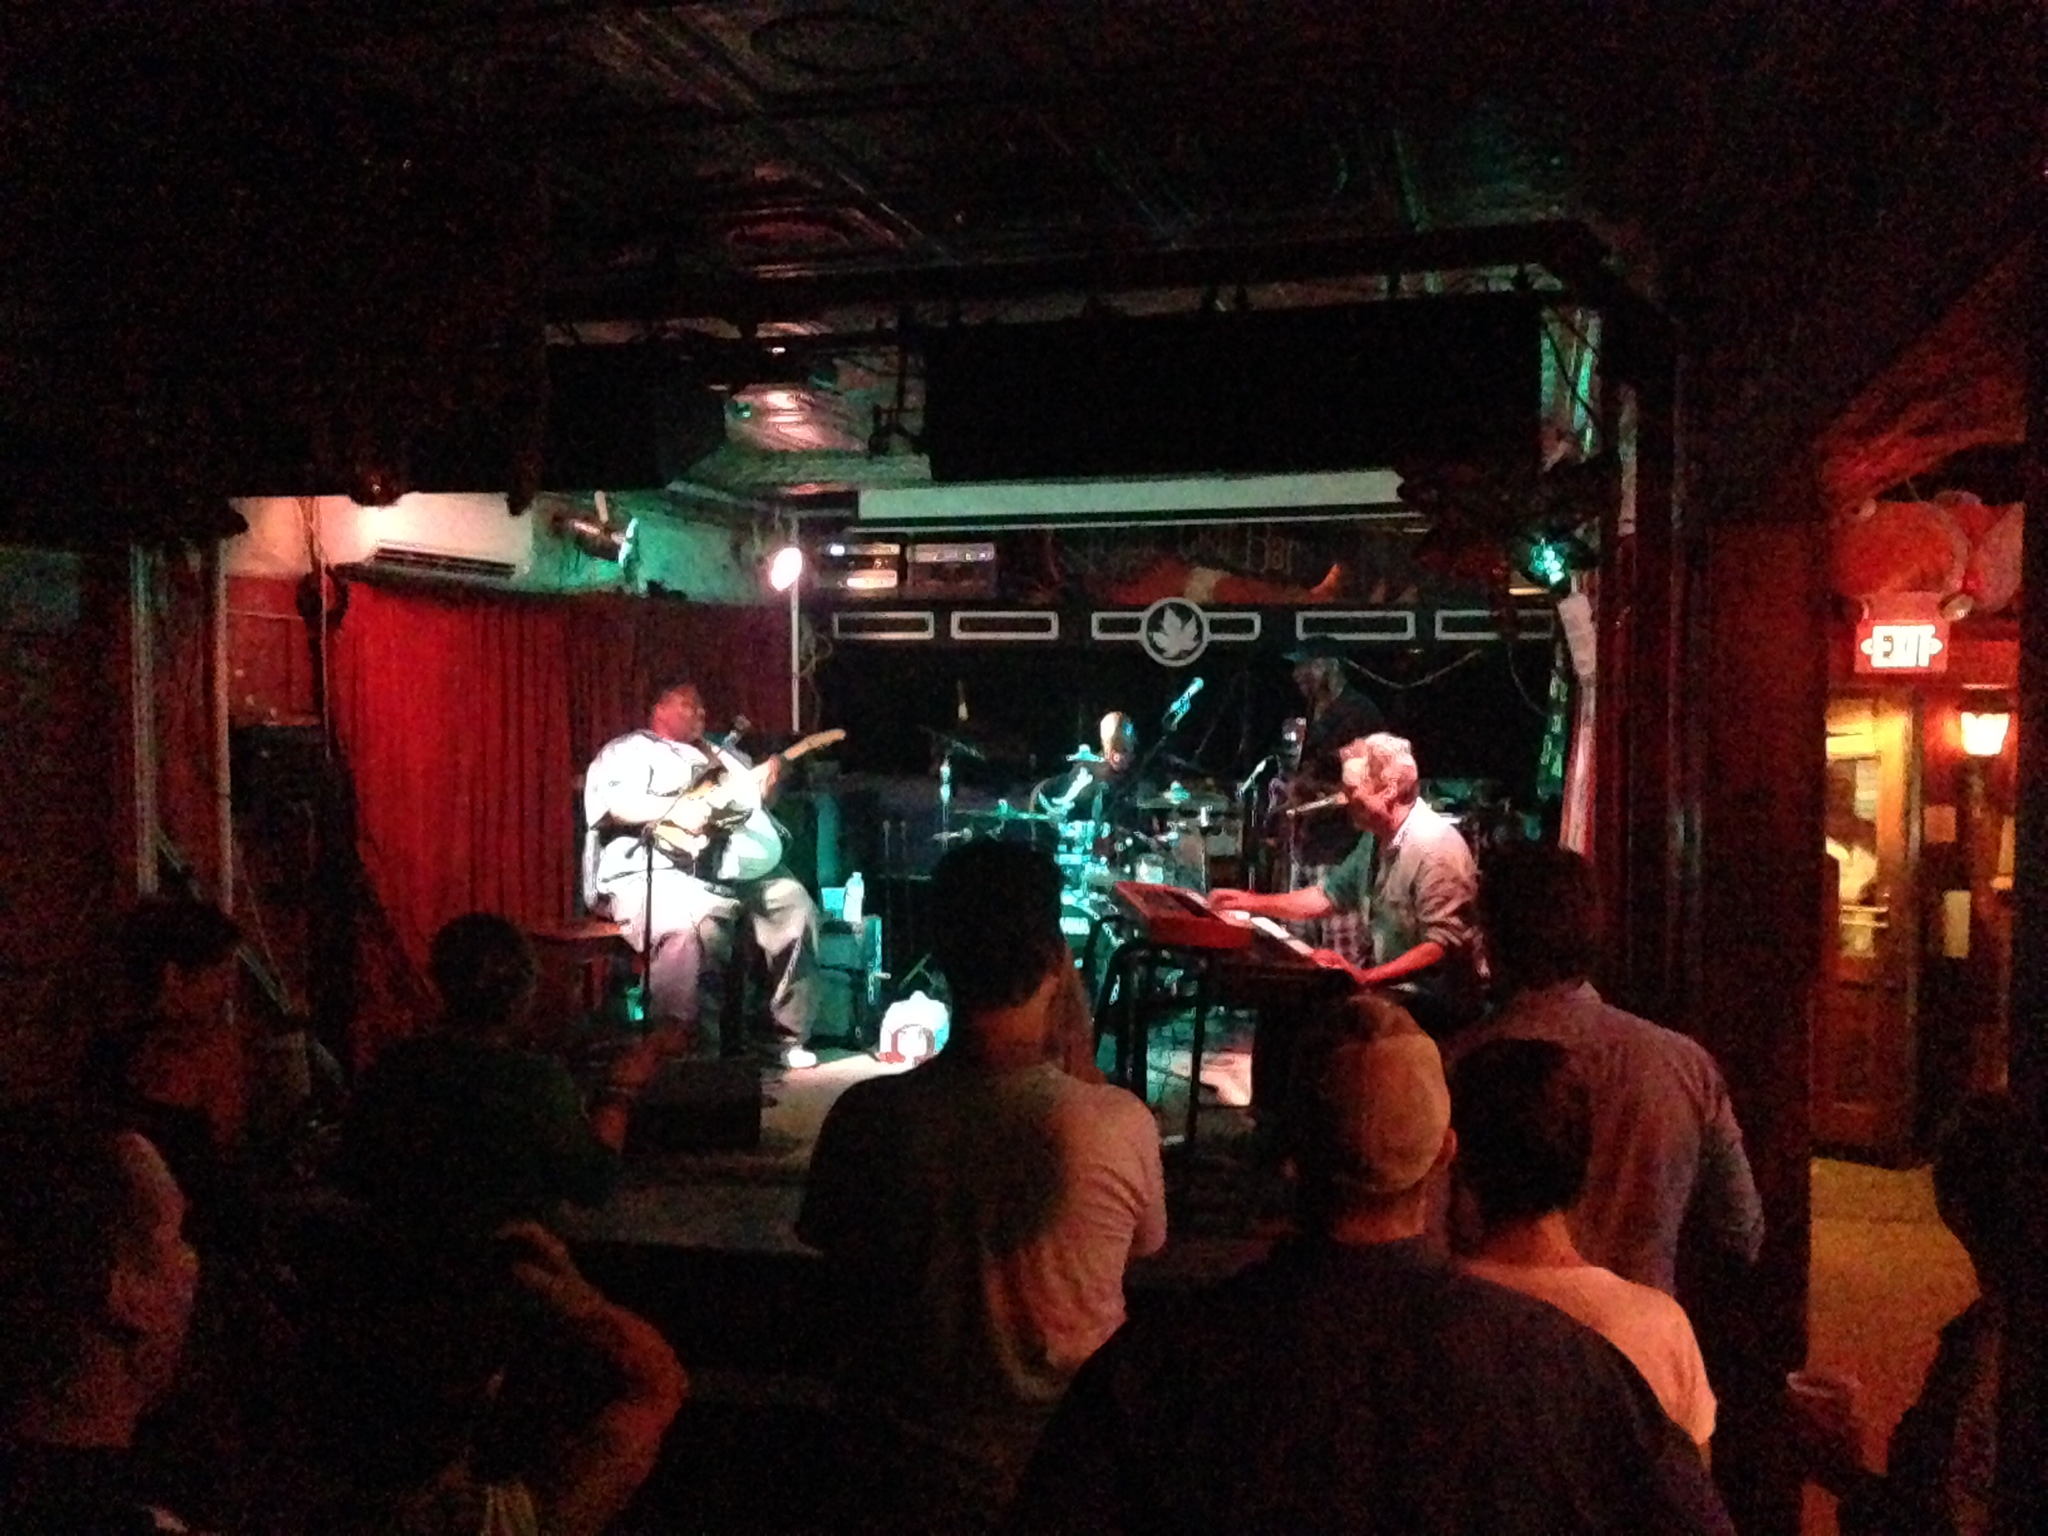 Jon Cleary & The Absolute Monster Gentelmen